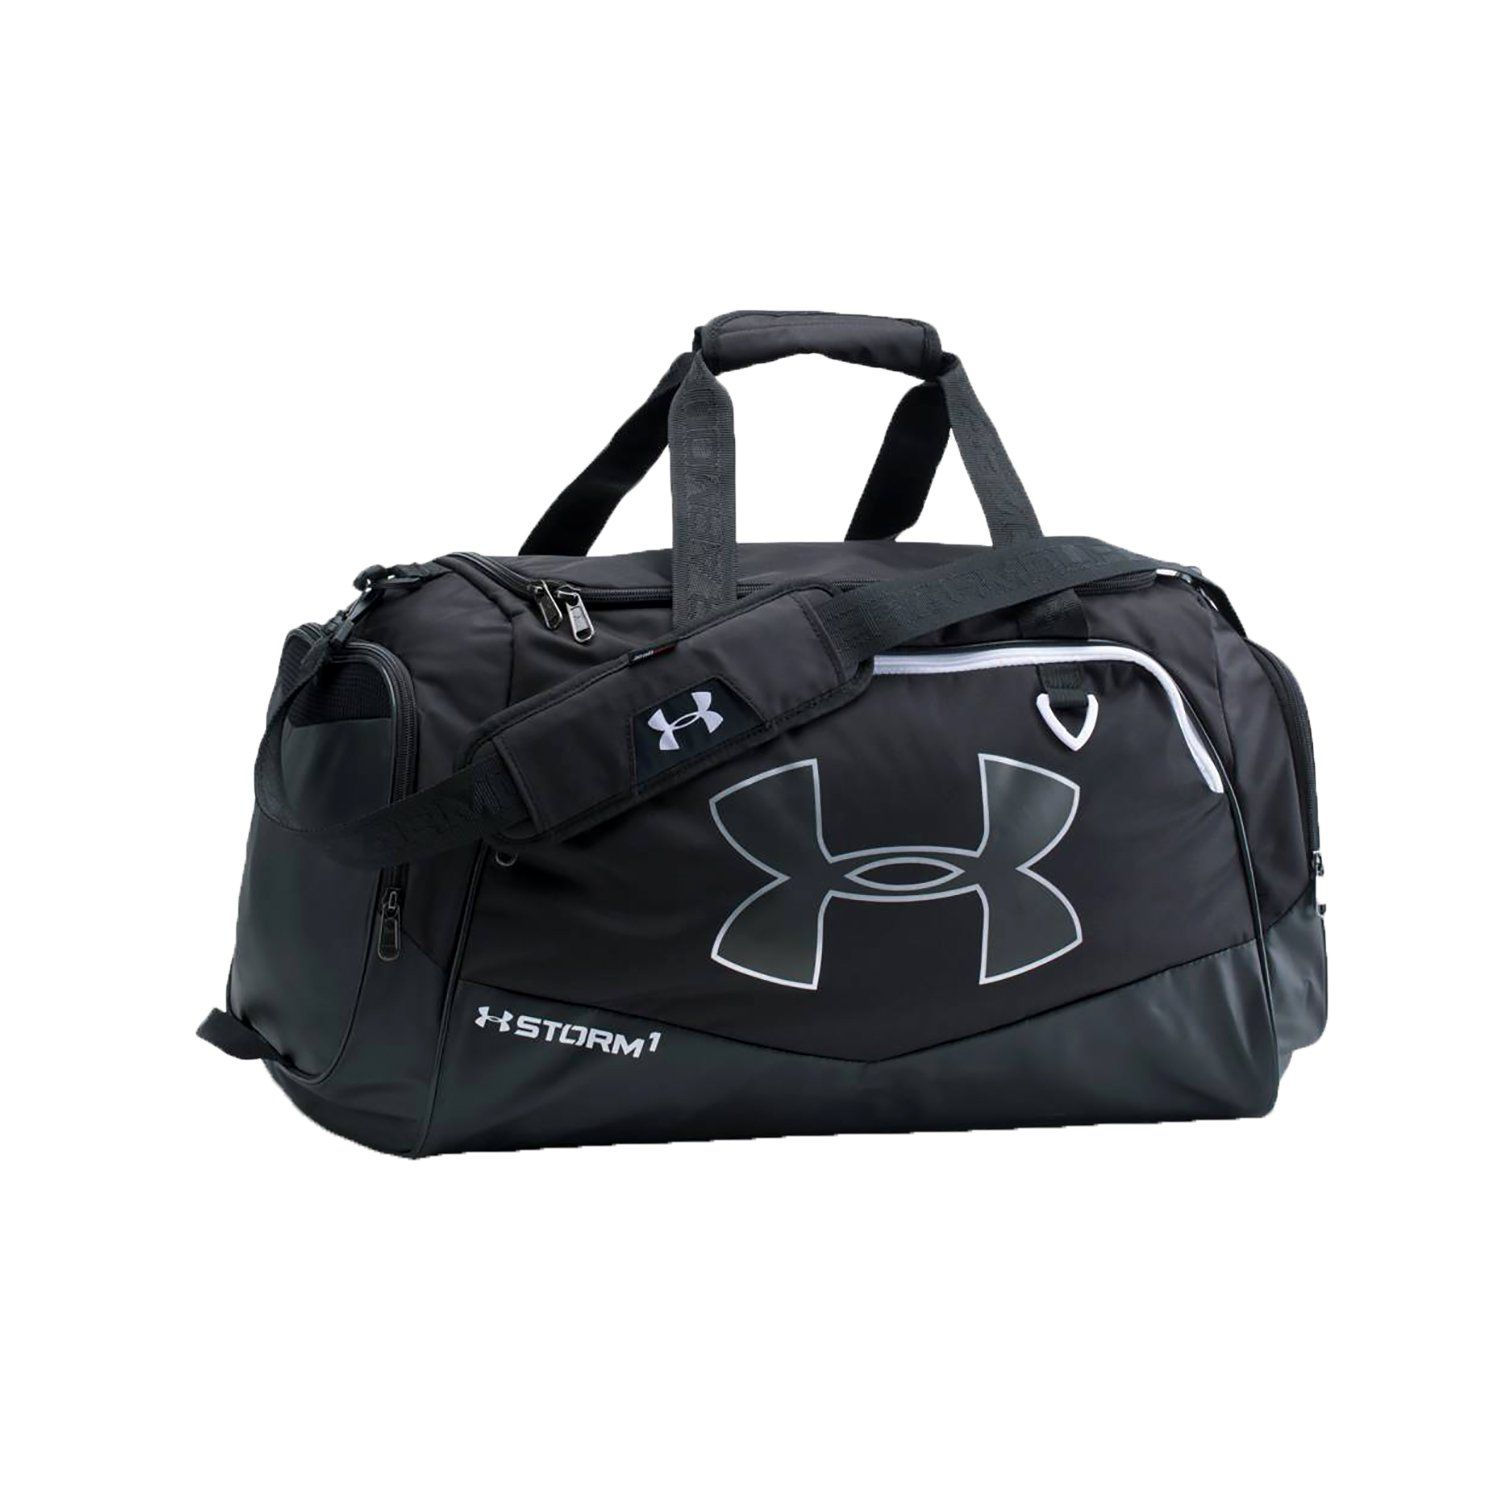 👉Discover the Best Gym Bags For Men to buy in 2019 and pick up a great  bargain this year! (UPDATED) + BONUS Gym Bags For Men Buyer s Guide! 50b73013d34ec